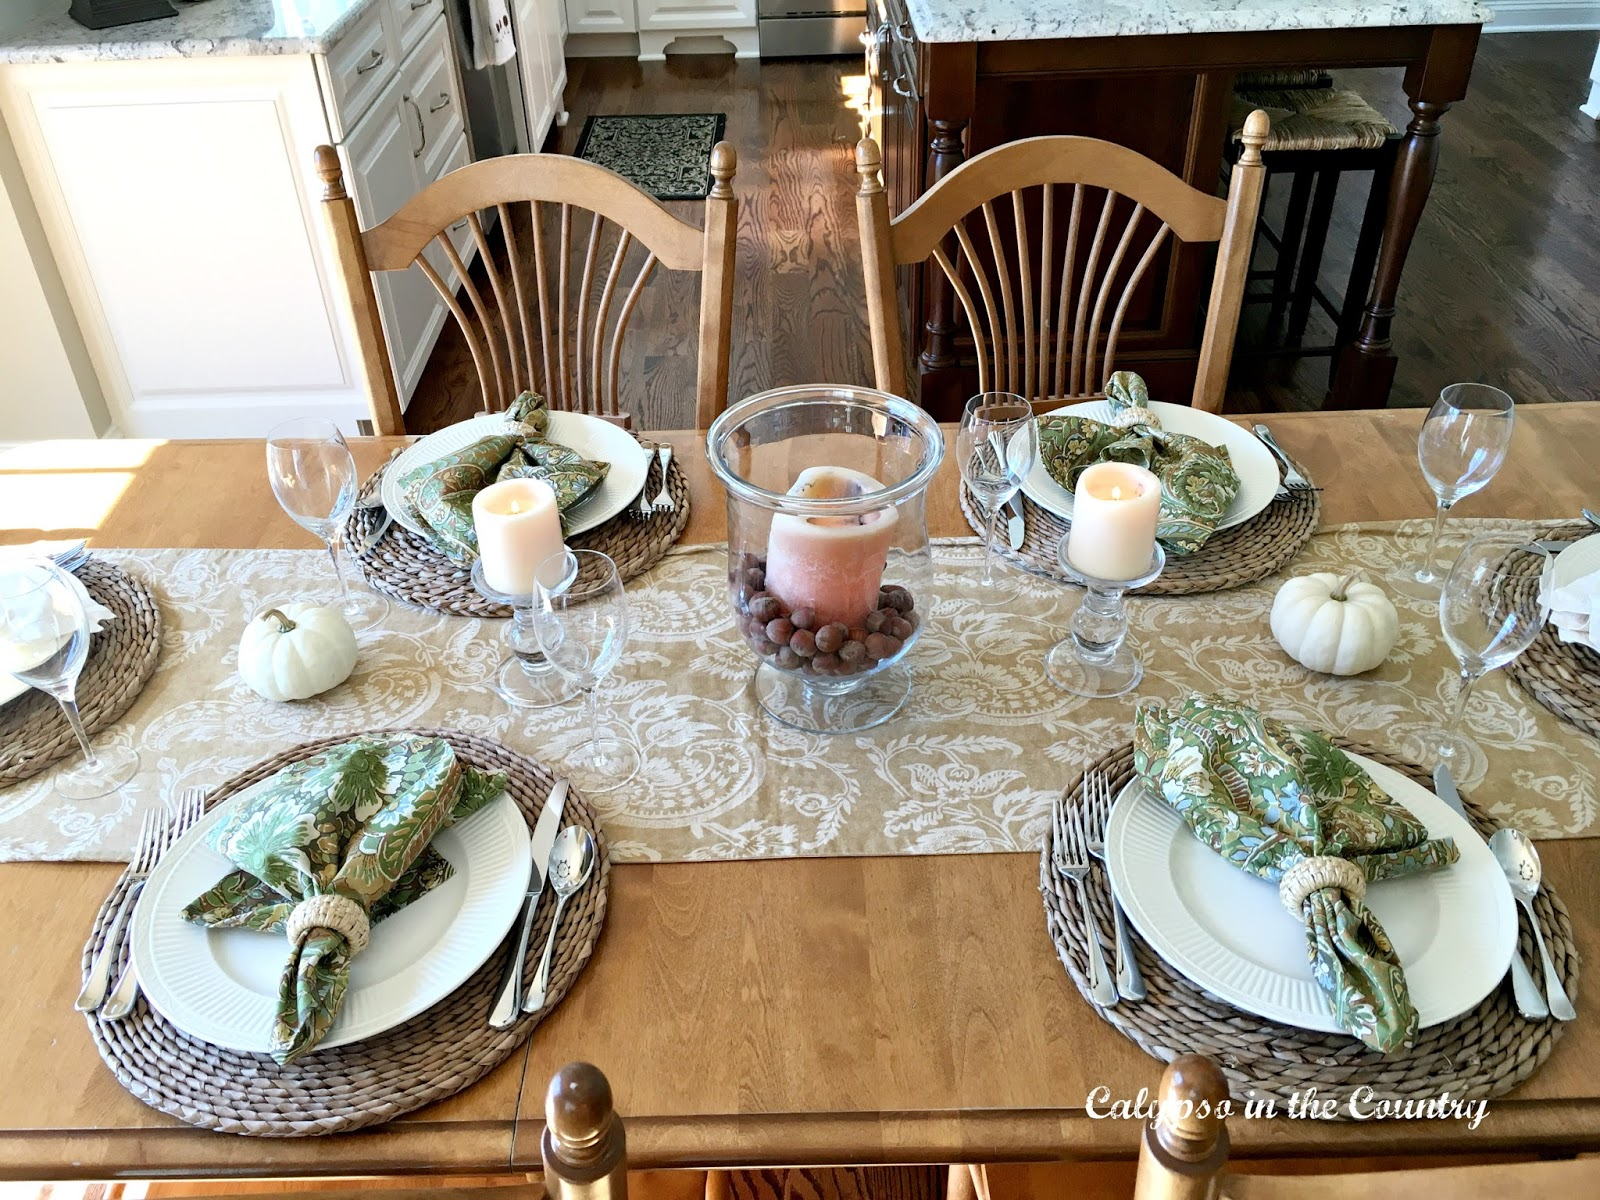 Kitchen Table Set for Fall using textures and neutrals